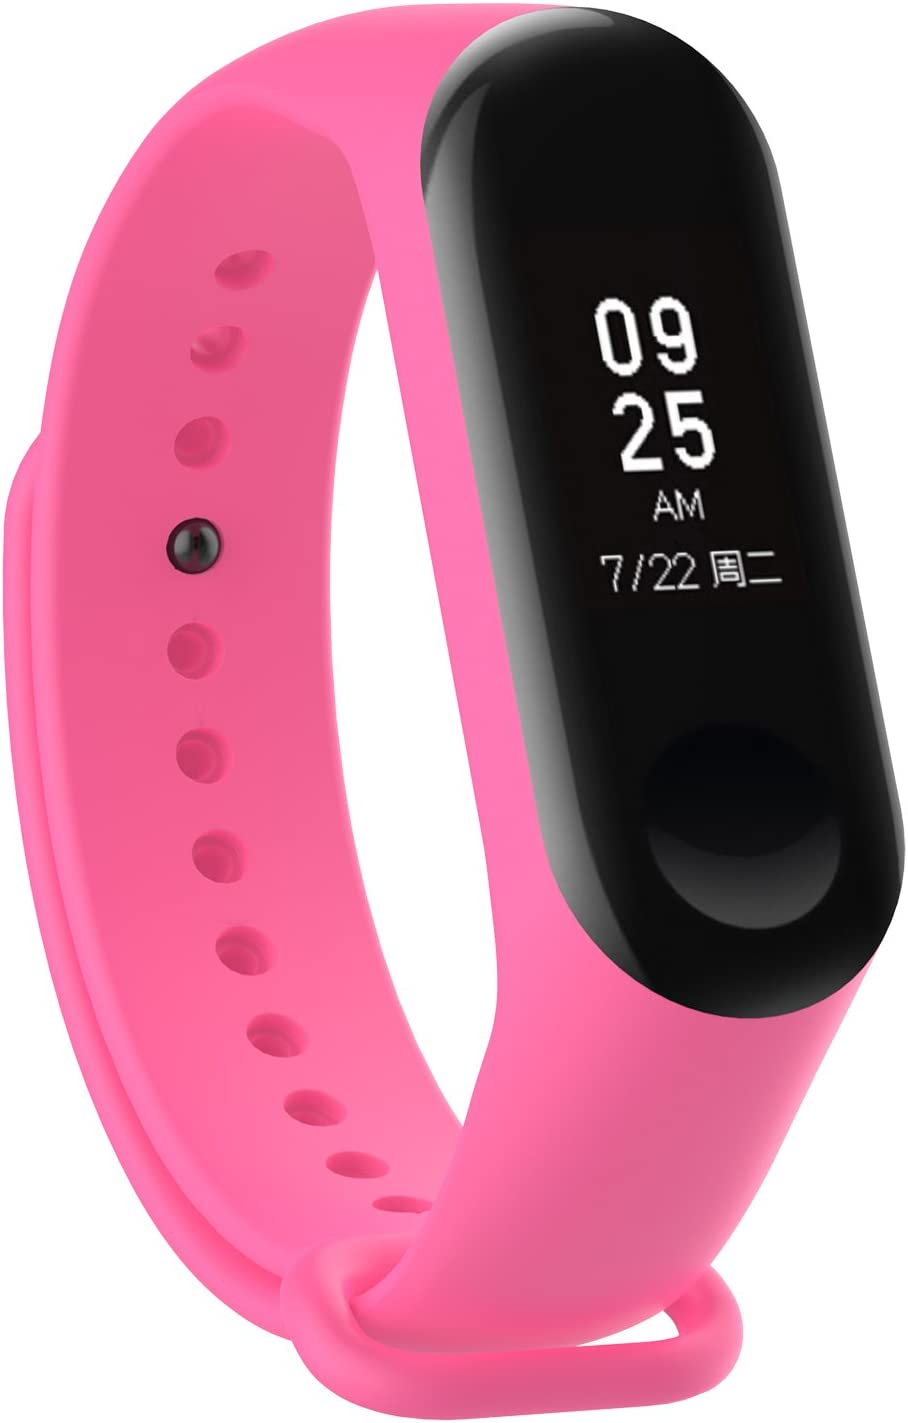 Not for Mi1//2 FUNKID Band for Xiaomi 3 Smartwatch Wristbands Replacement Accessaries Straps Bracelets for Mi3